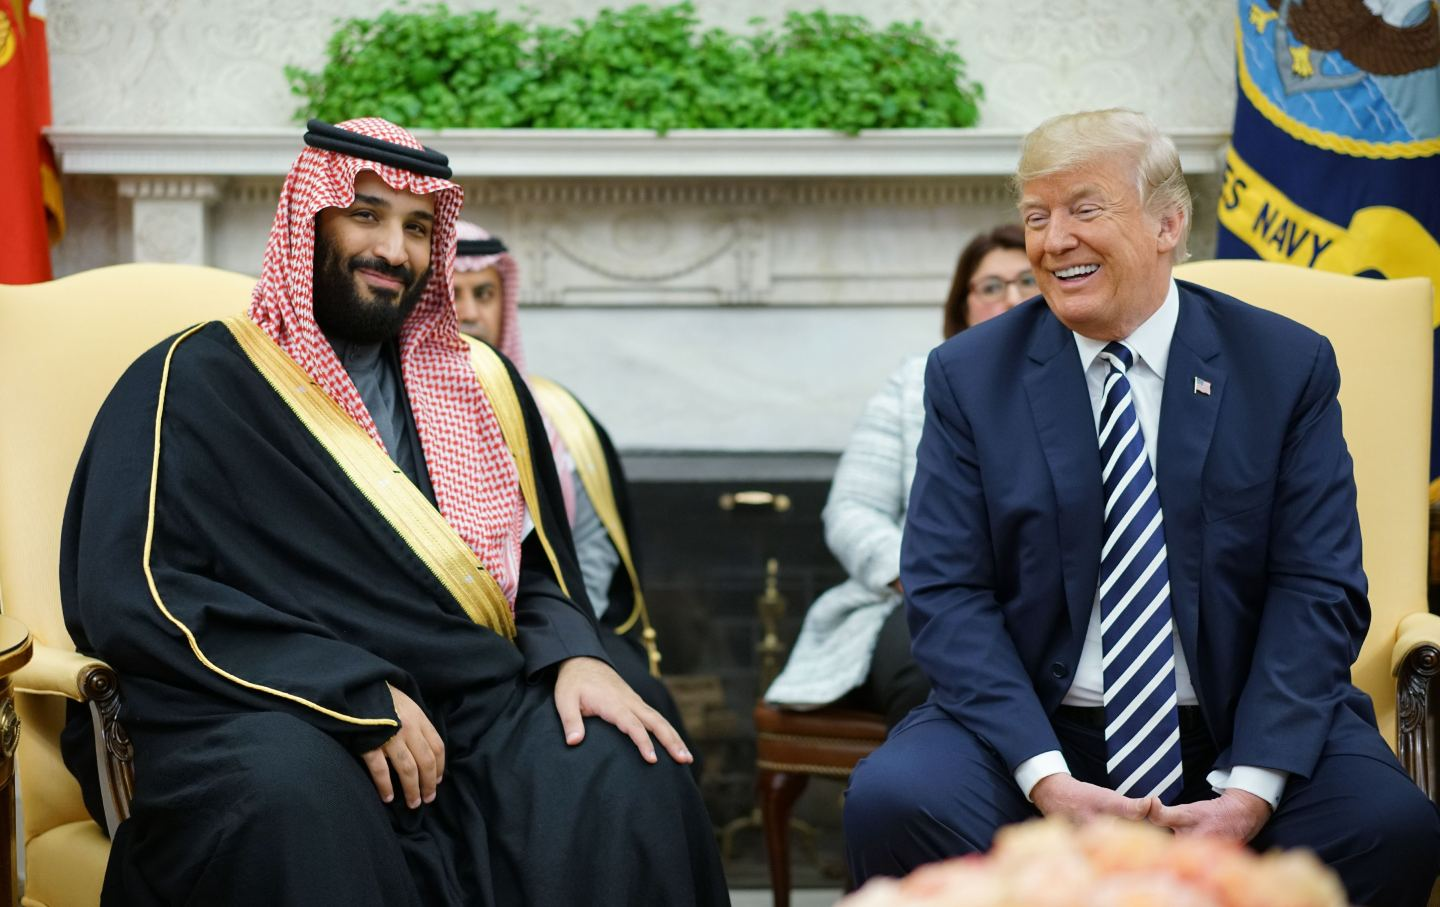 Donald Trump sits next to Saudi Crown Prince in Oval Office